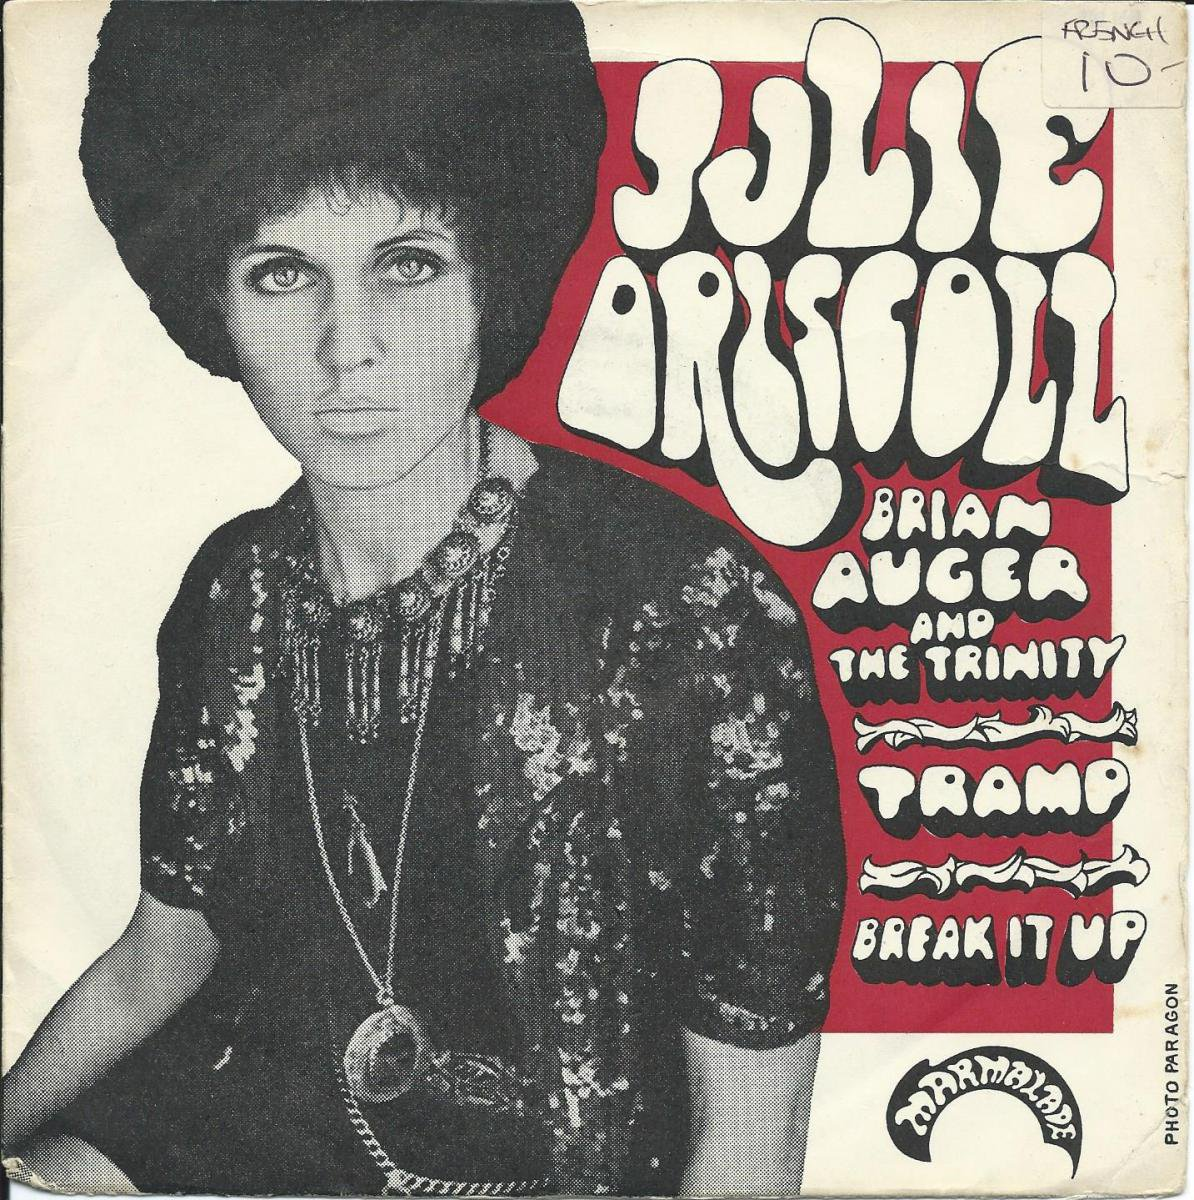 JULIE DRISCOLL BRIAN AUGER & THE TRINITY / TRAMP / BREAK IT UP (7